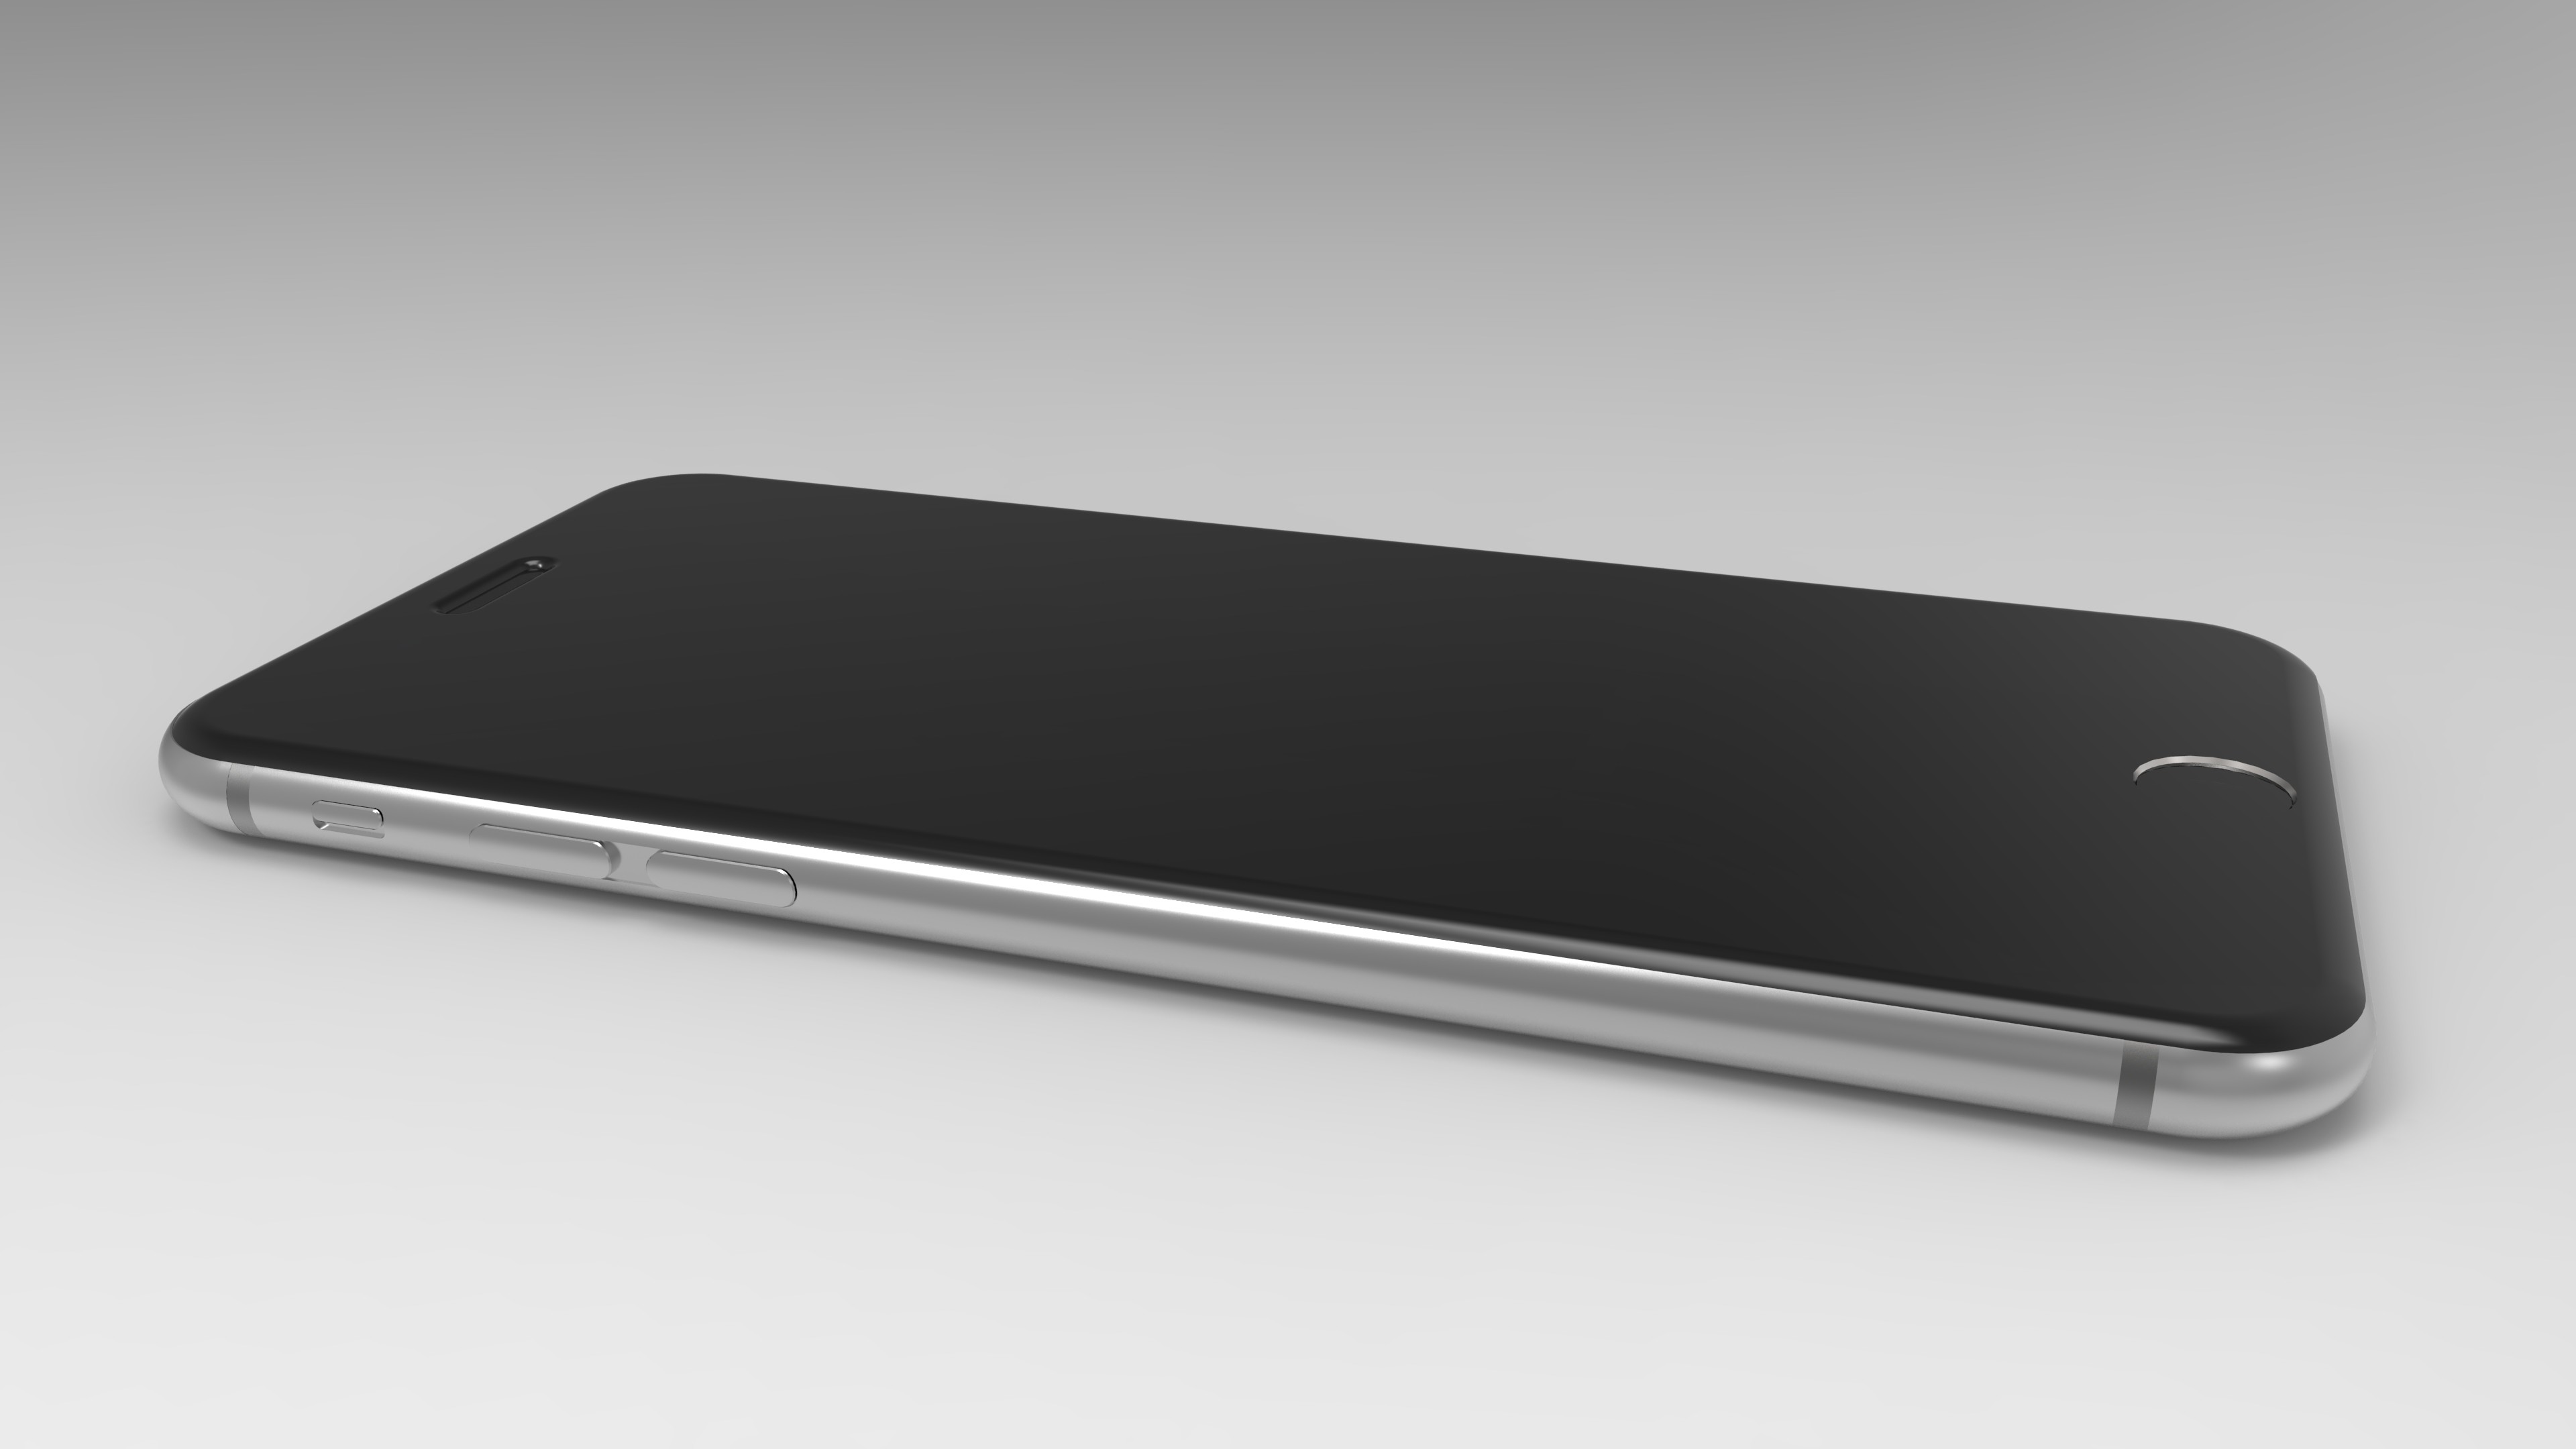 Download 3D model of iPhone 6, iPhone 6 Plus, iPhone 6s, iPhone 6 Plus and  more   4K Side